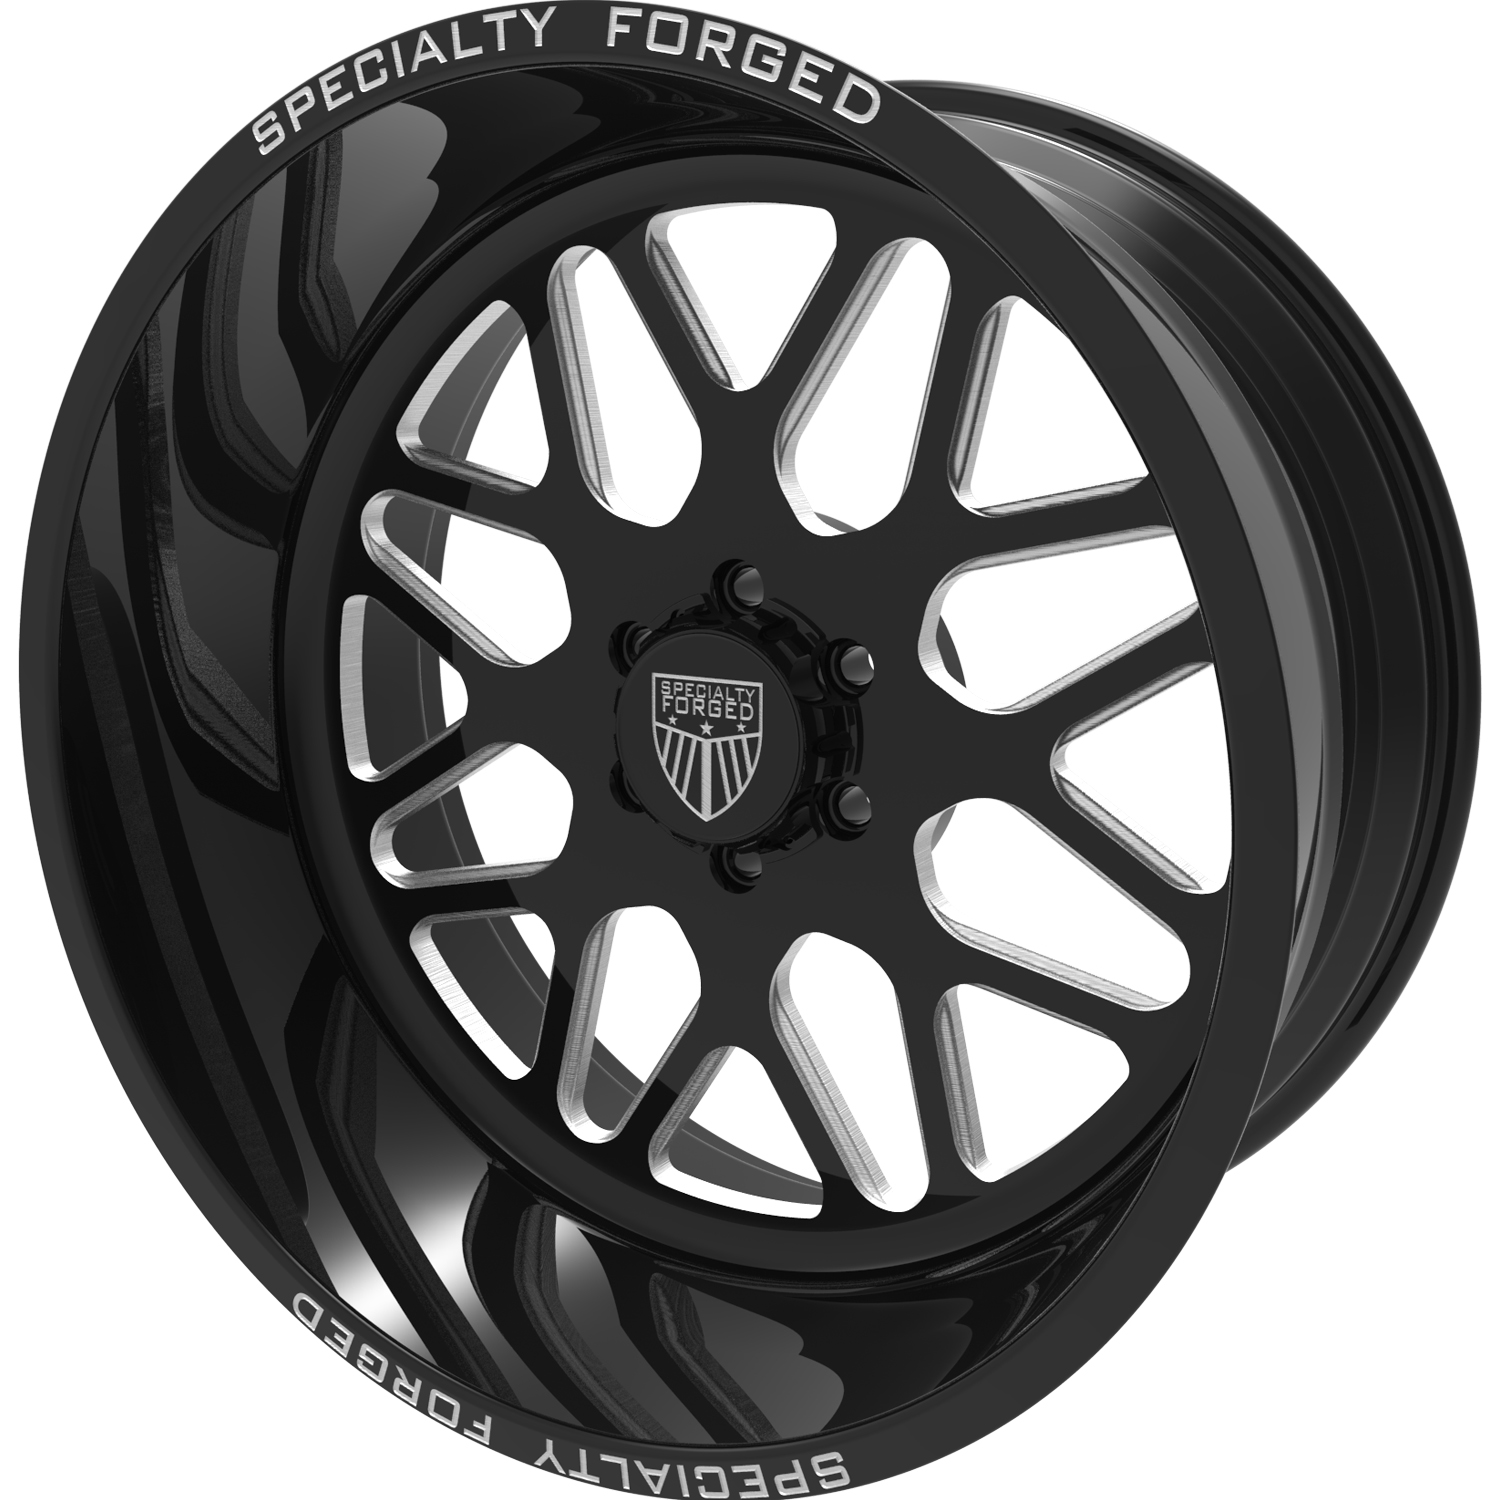 Specialty Forged SF009